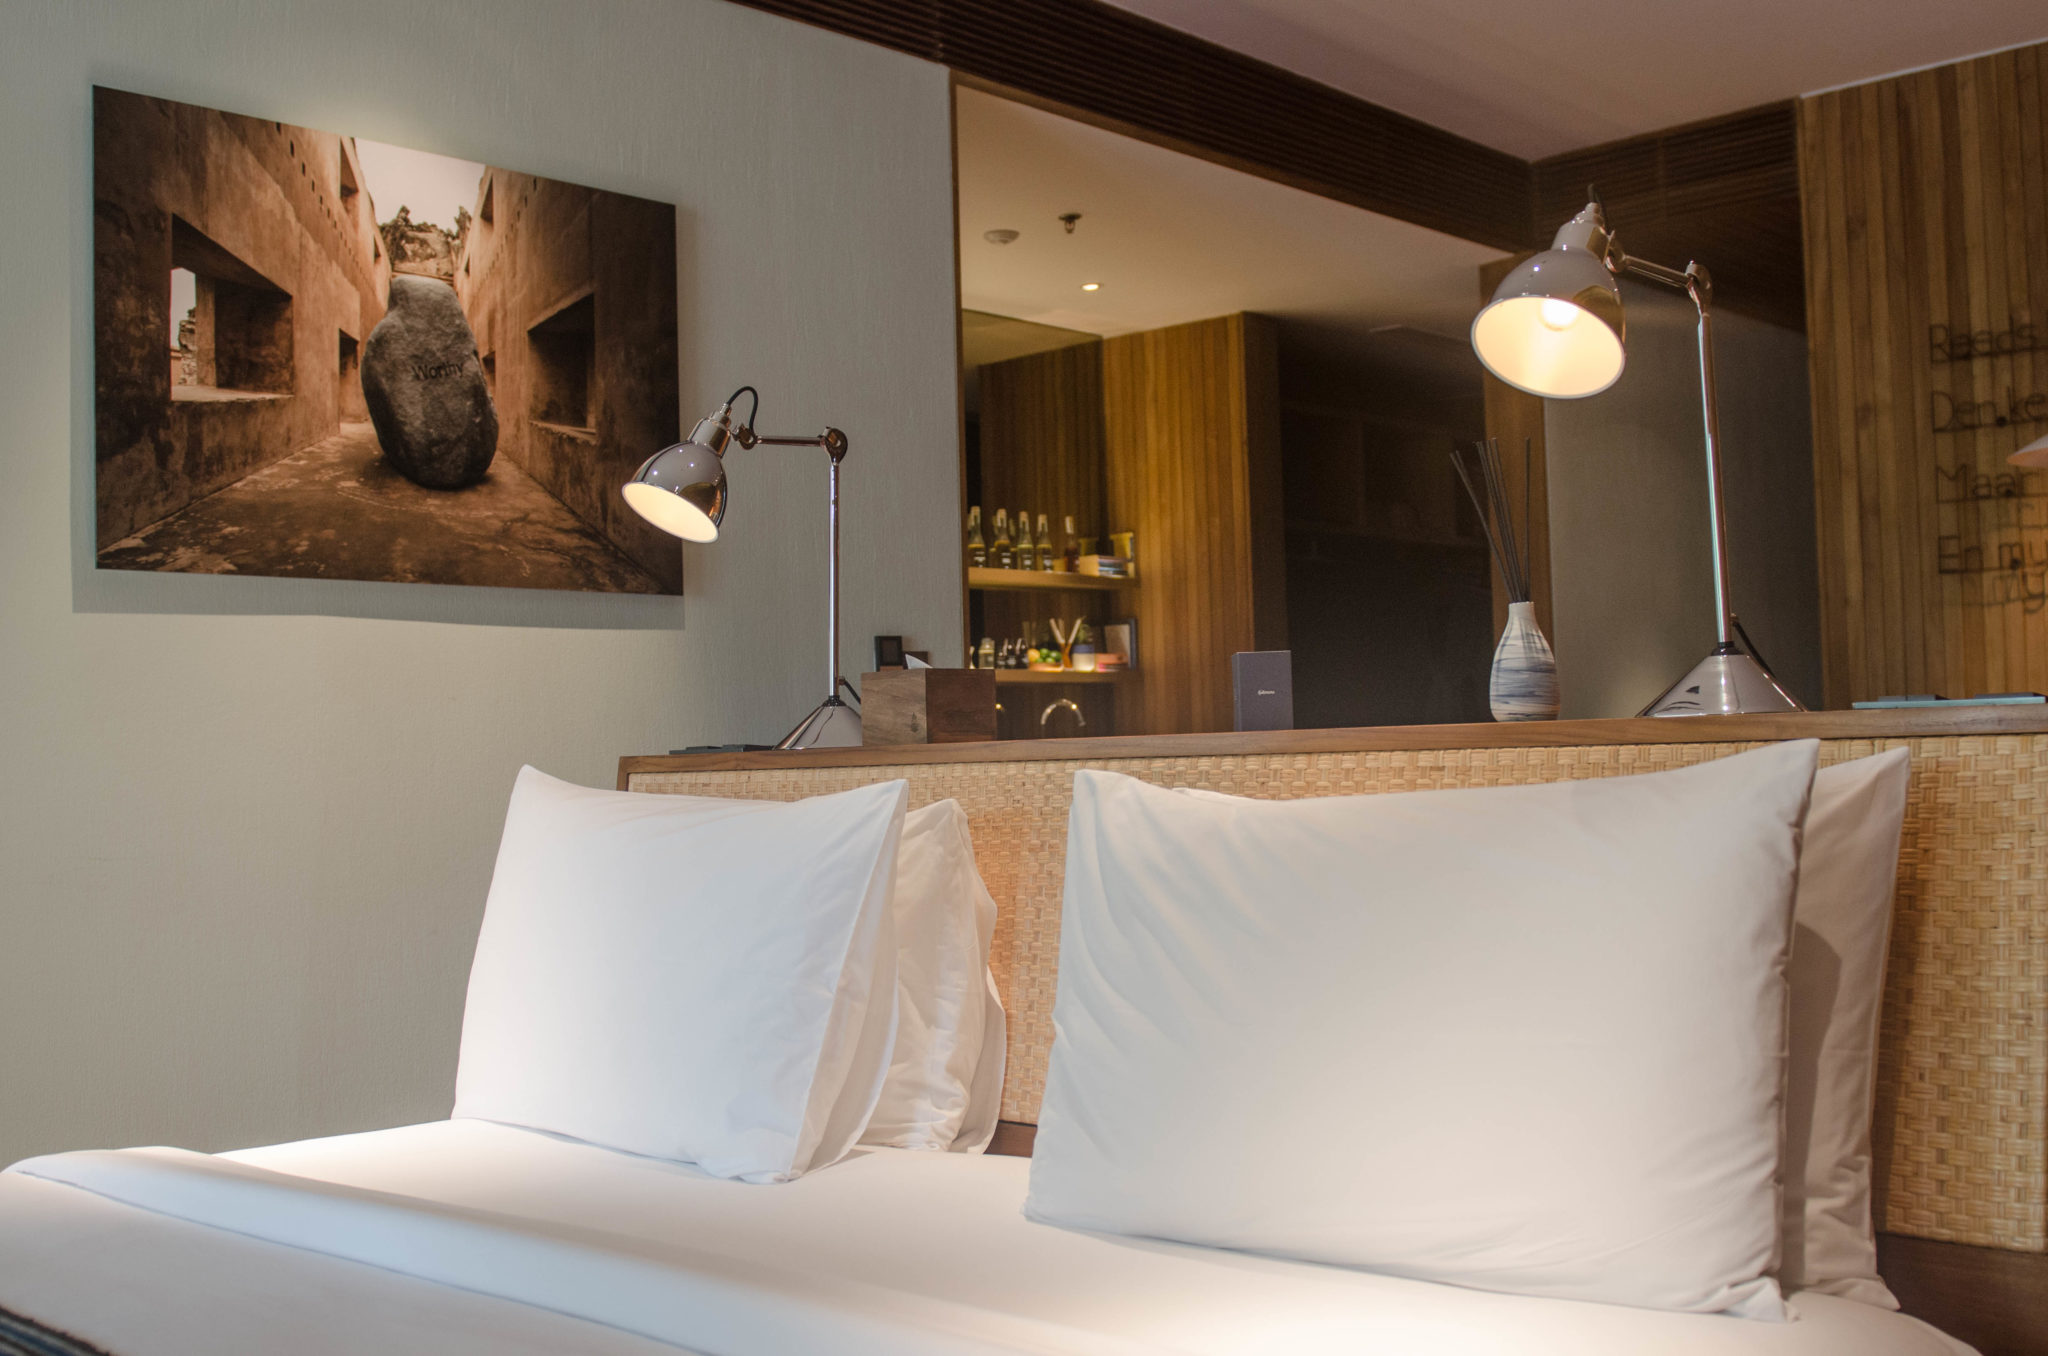 Katamama Hotel Bali: Wanna have your sleep, babe?